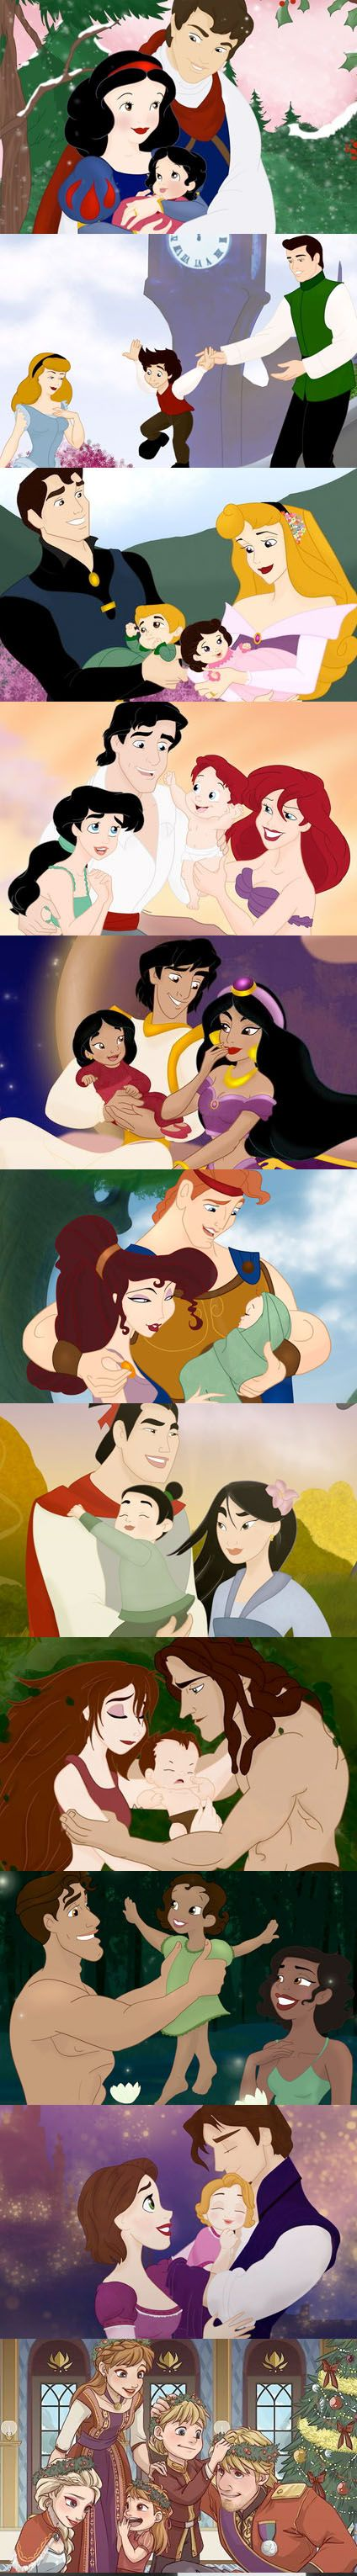 what happens after the happily ever after